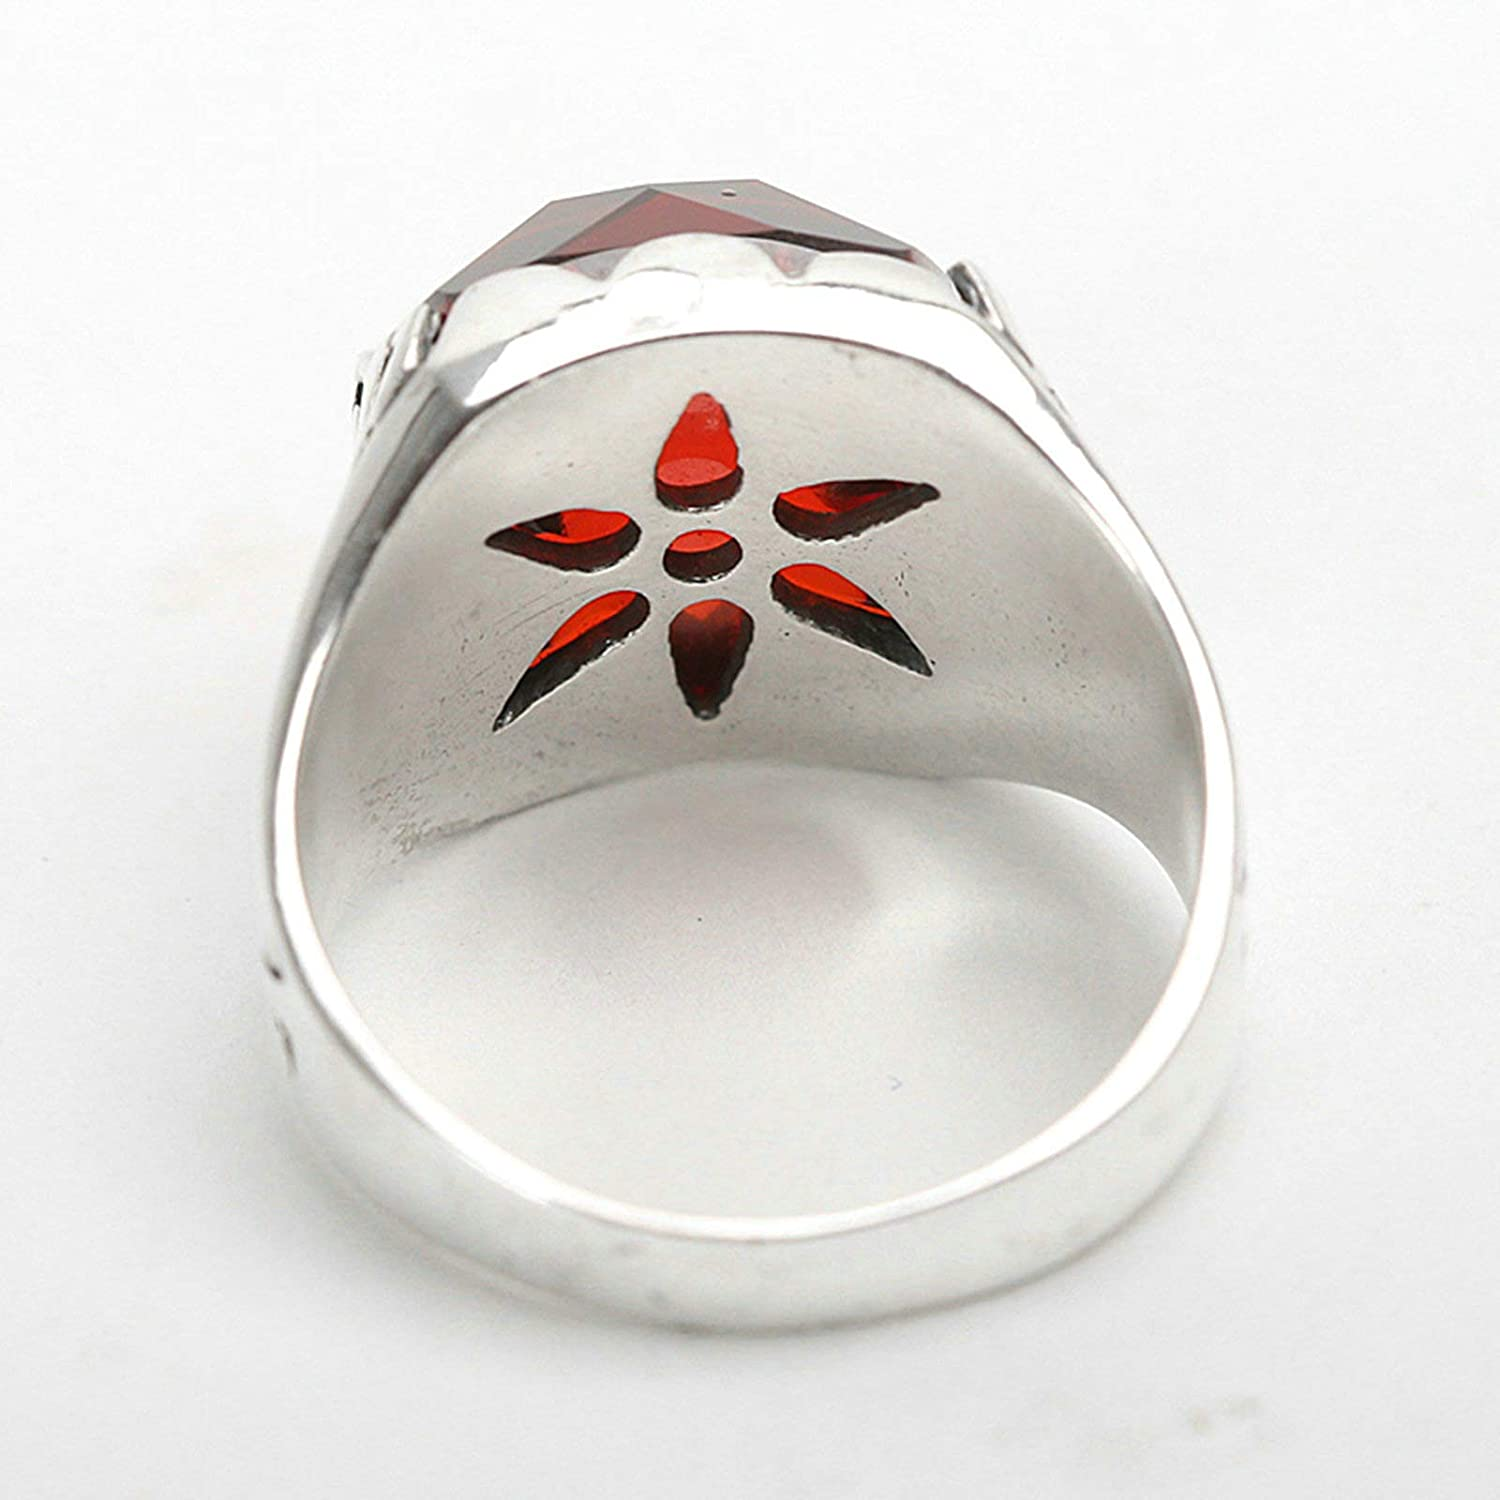 Aeici 925 Silver for Men and Women Band for Men and Women Vintage Biker Red Rectangle Rhinestone Signet Ring